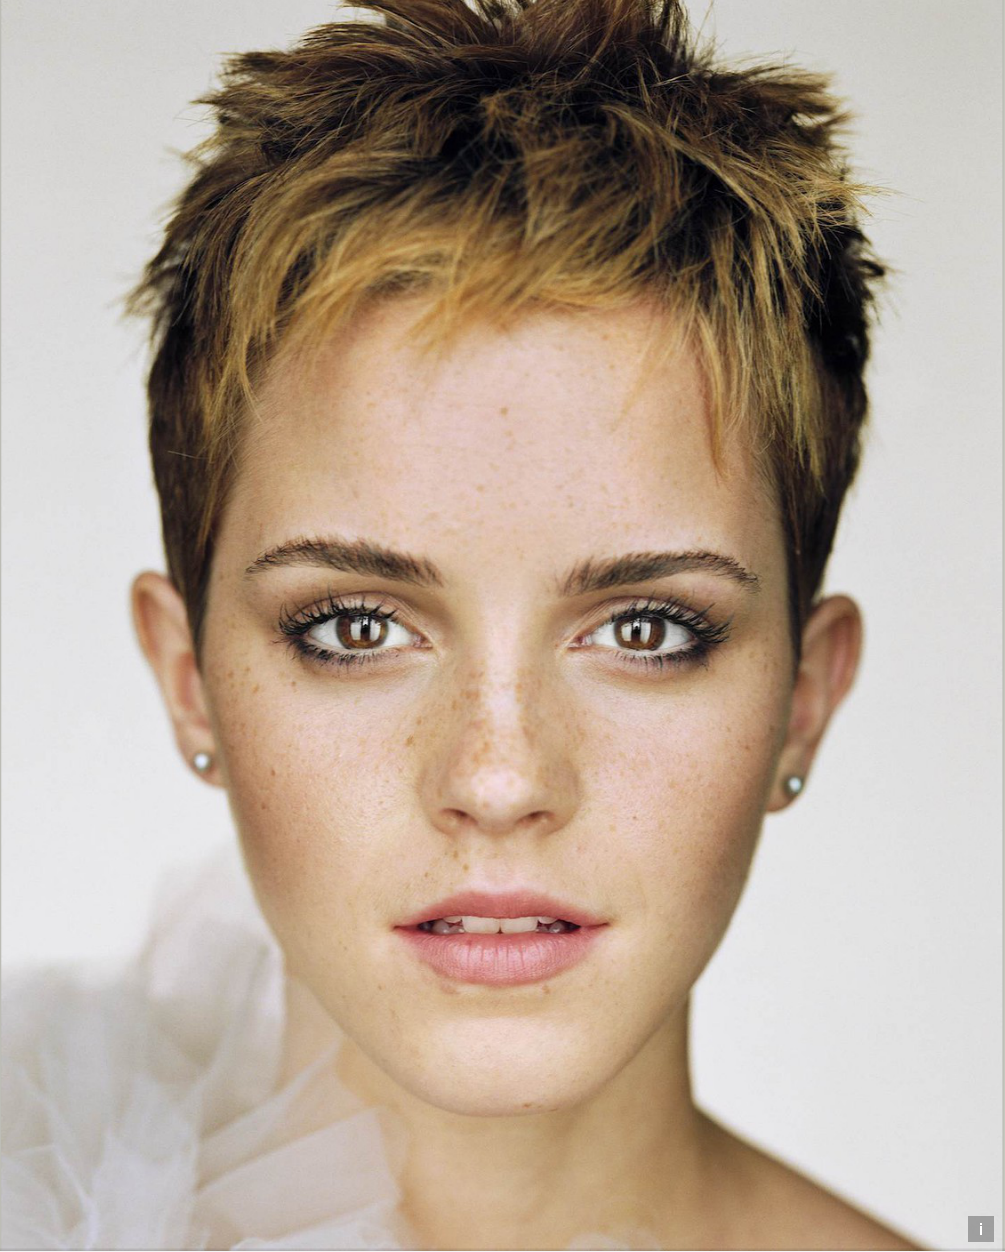 Martin Schoeller's portrait of Emma Watson from his 'Close Up' series.